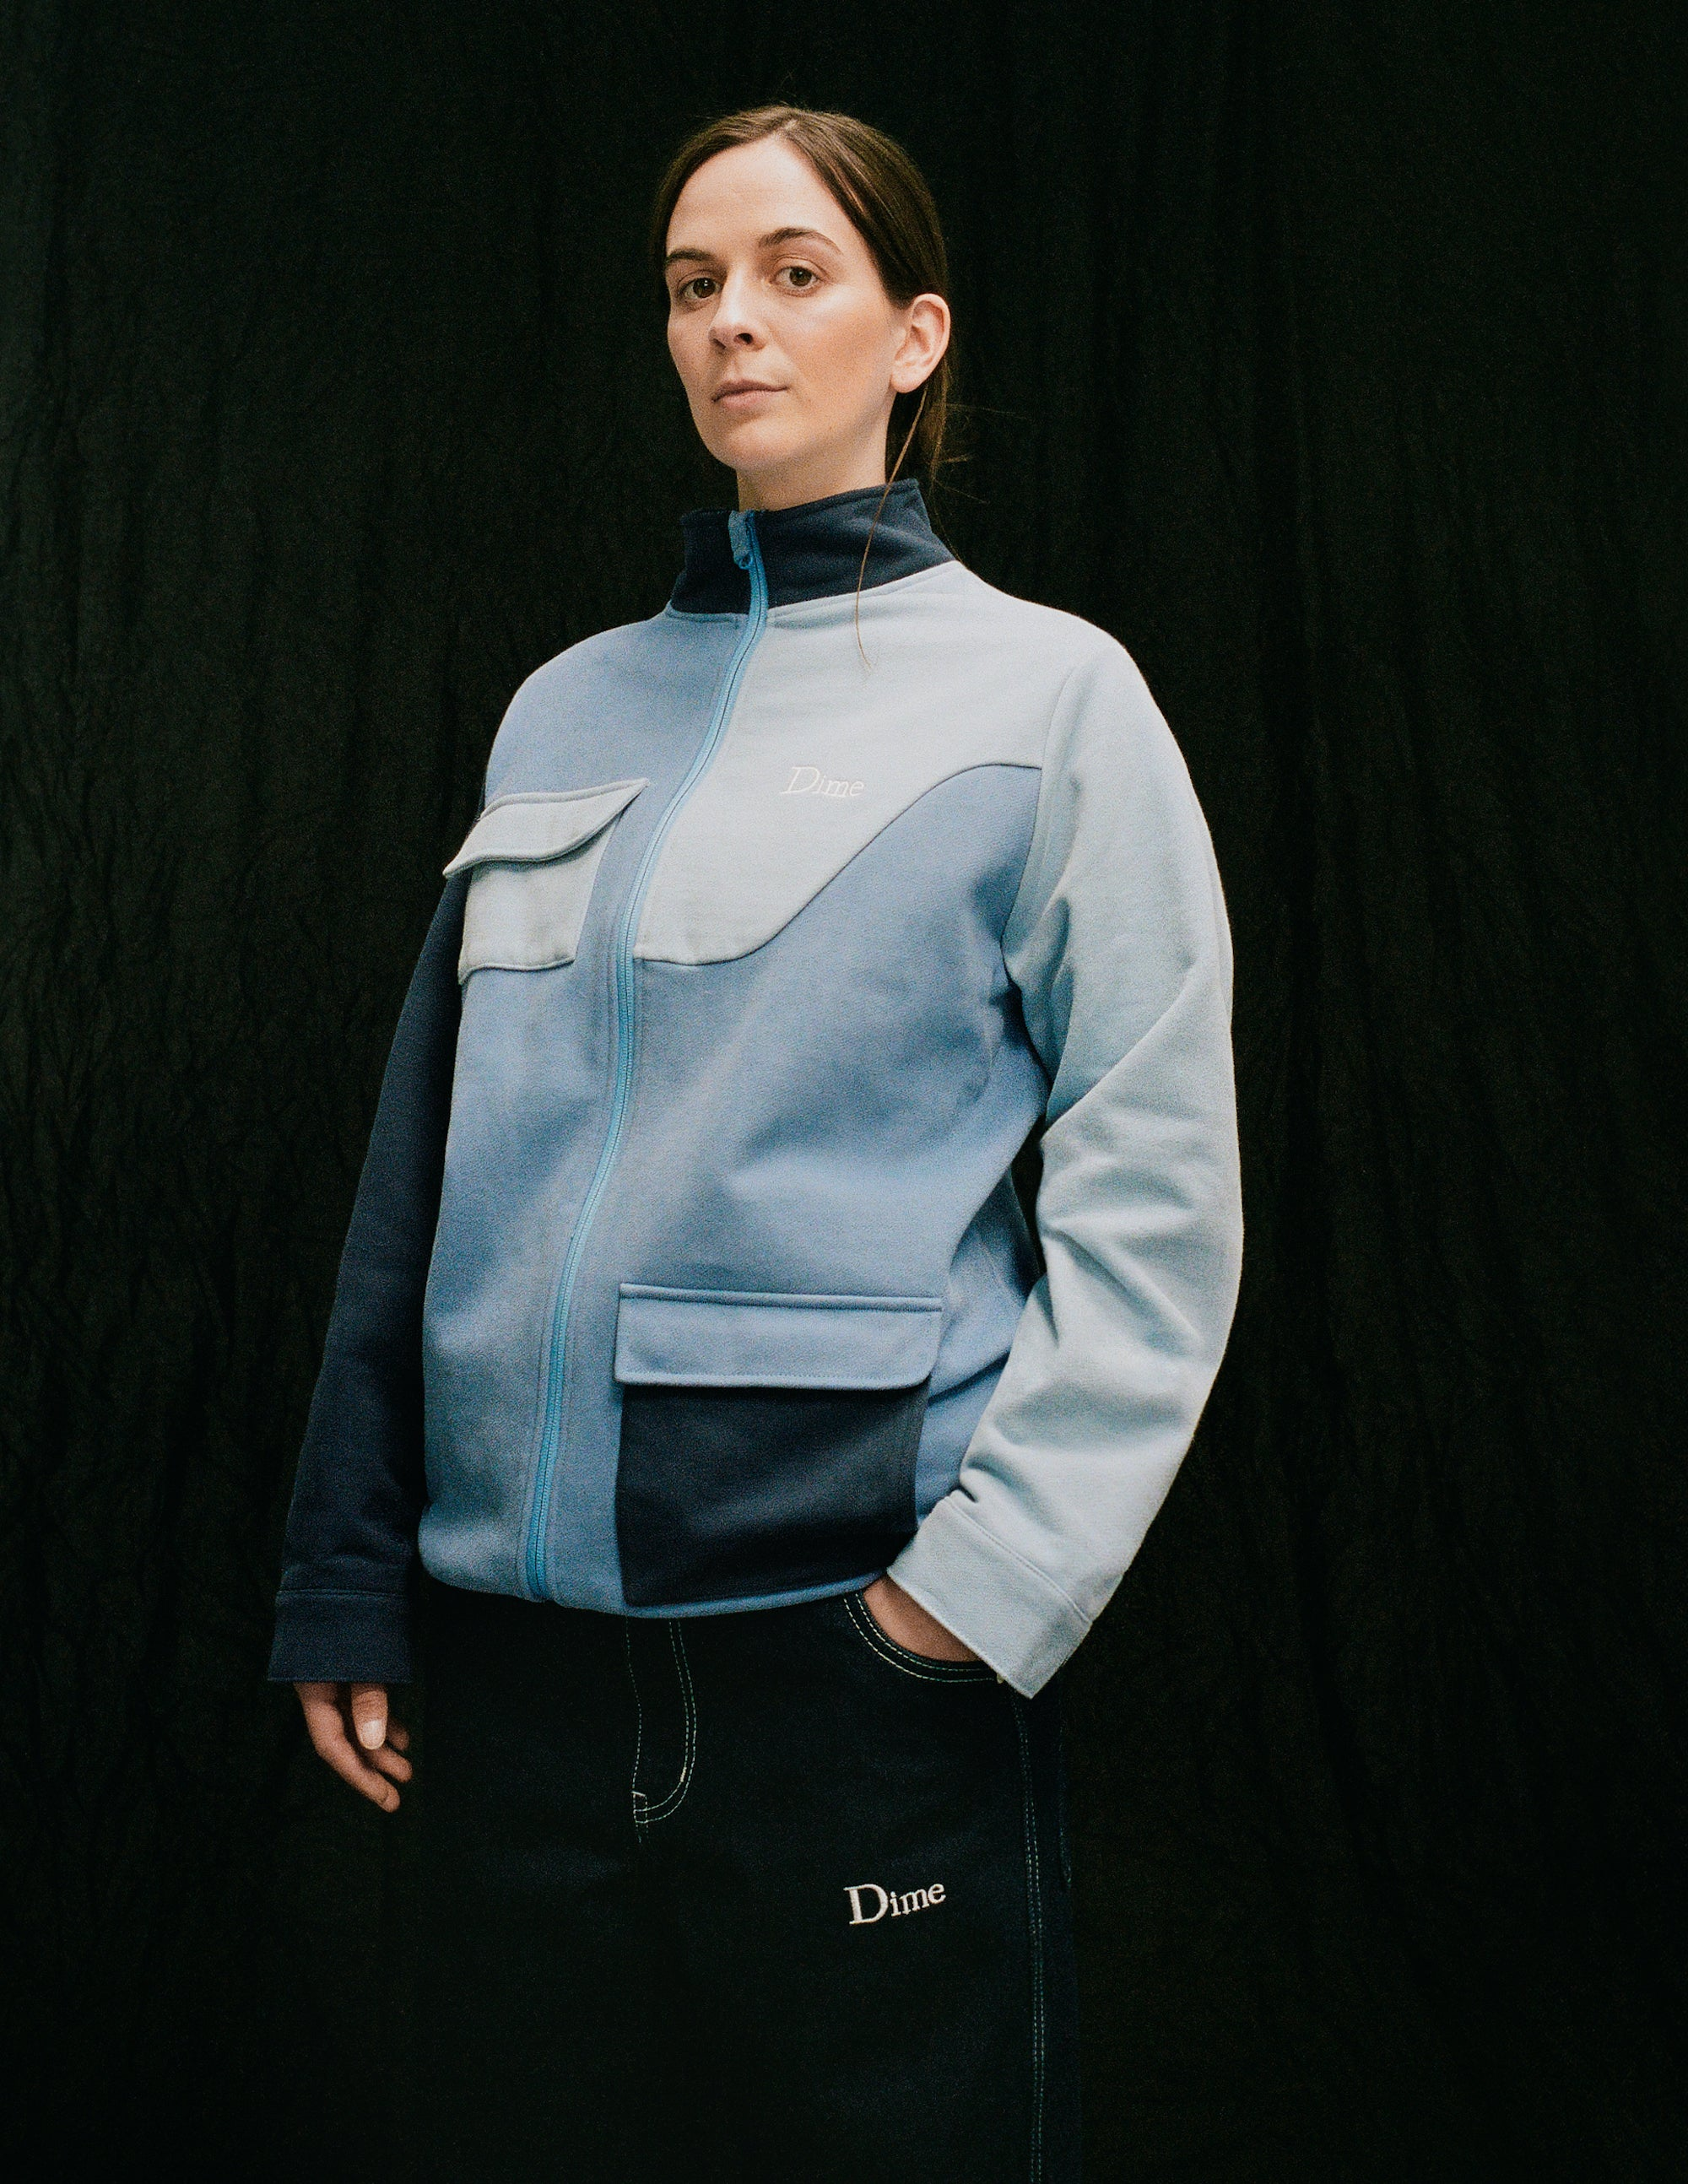 Dime Spring 2021 Lookbook Brushed Cotton Track Jacket in Blue Multi styled with Cotton Denim Pants in Dark Indigo